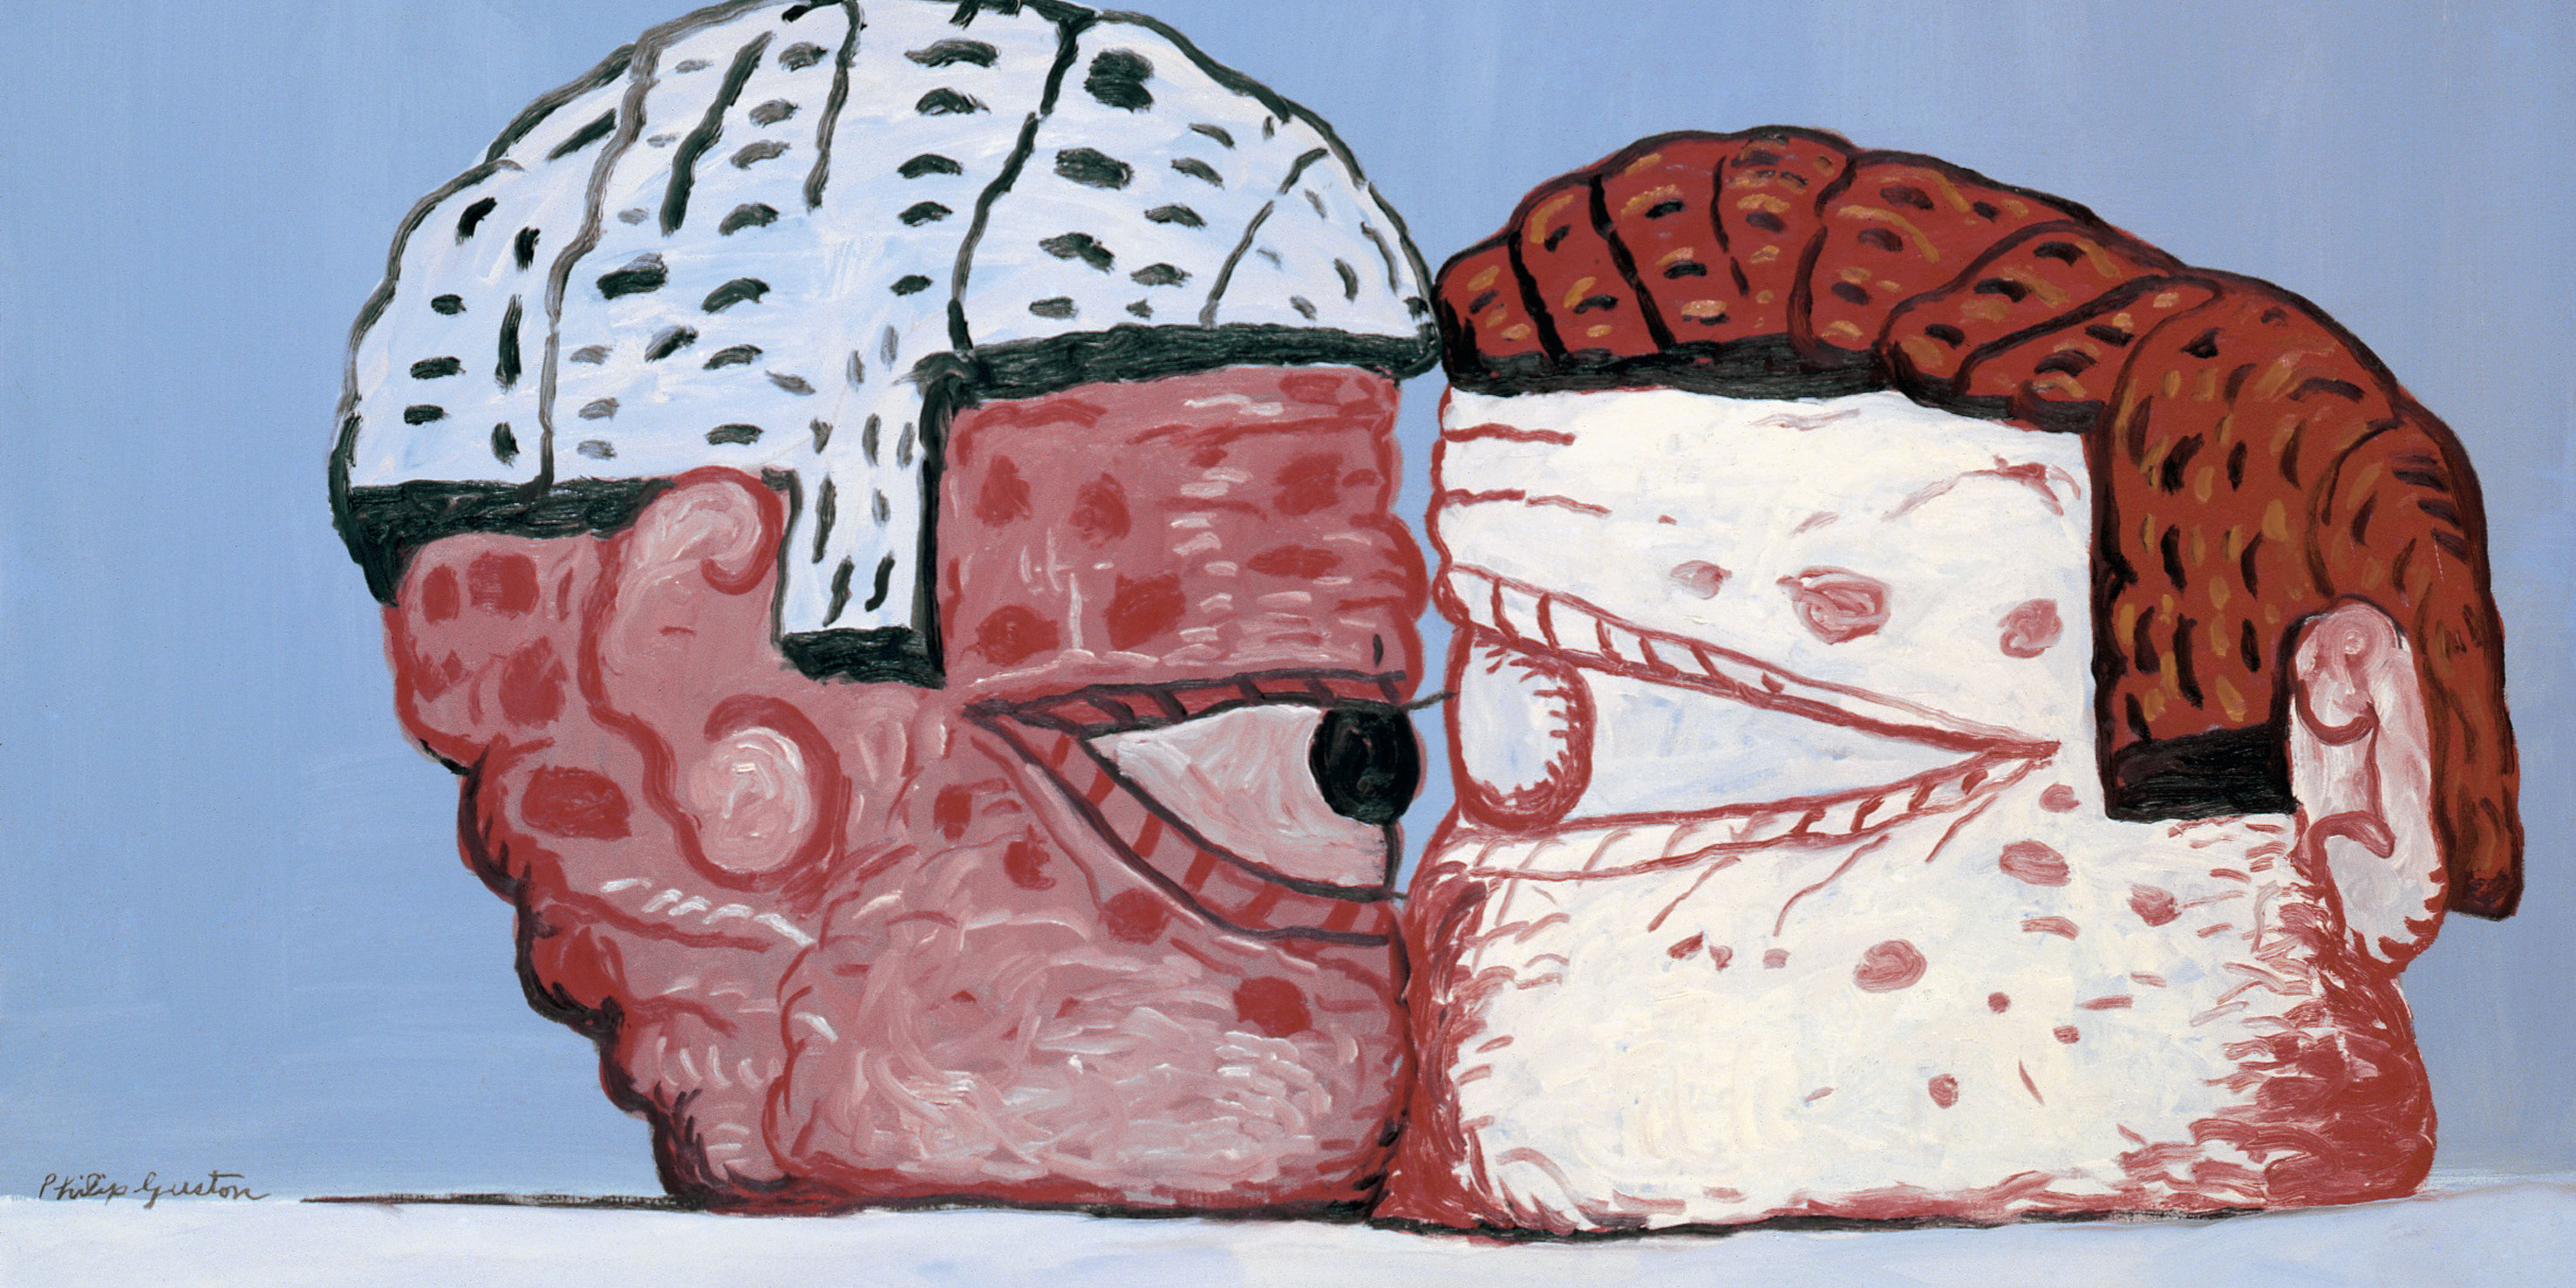 U_48_856568972342_Schirn_Presse_Philip_Guston_Aggressor_1978